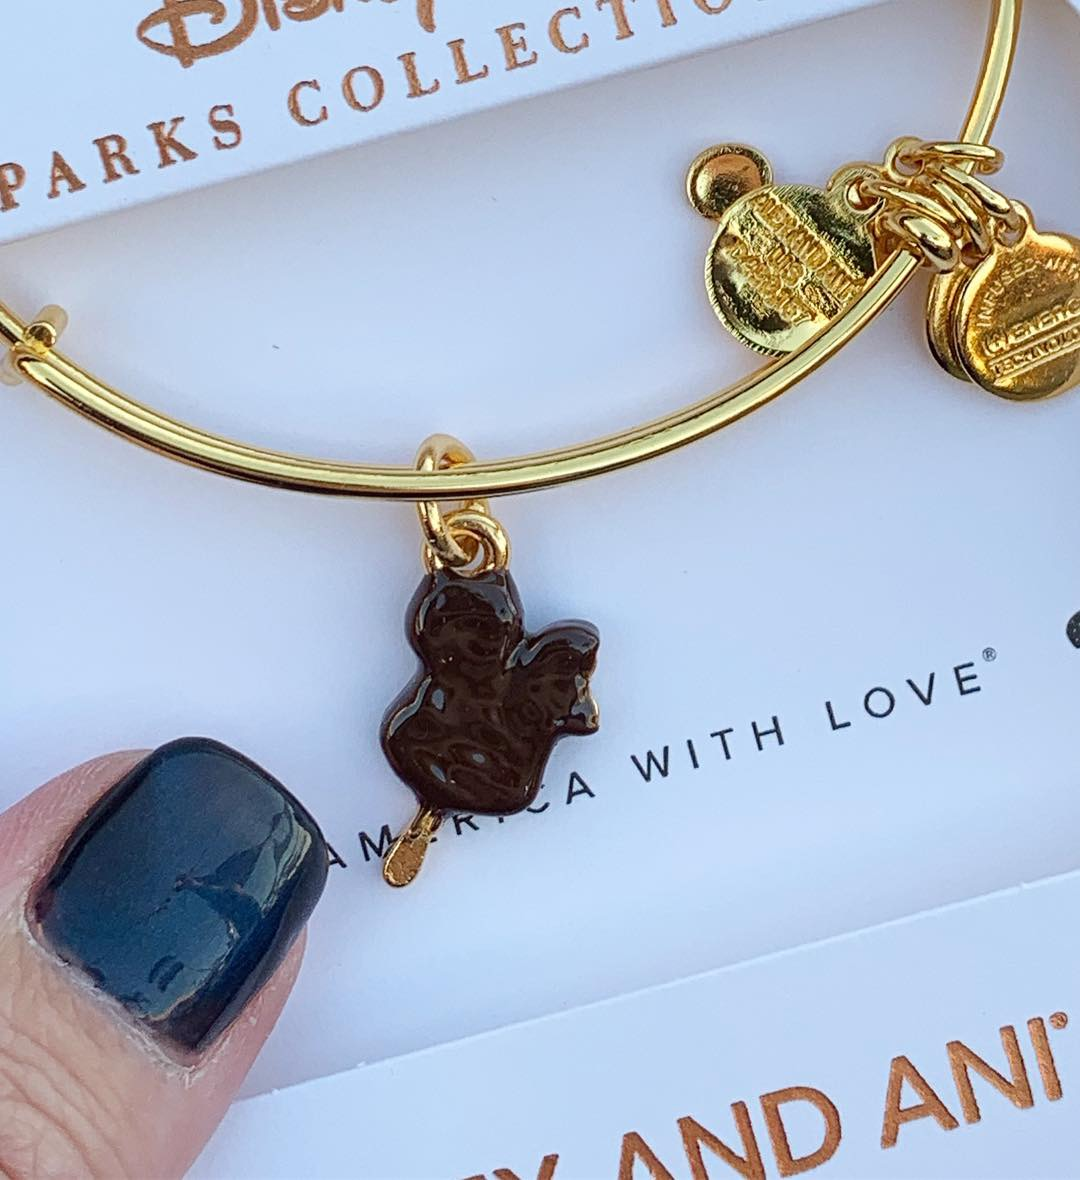 The tastiest D-lish treat Alex and Ani Bracelets have arrived! 1